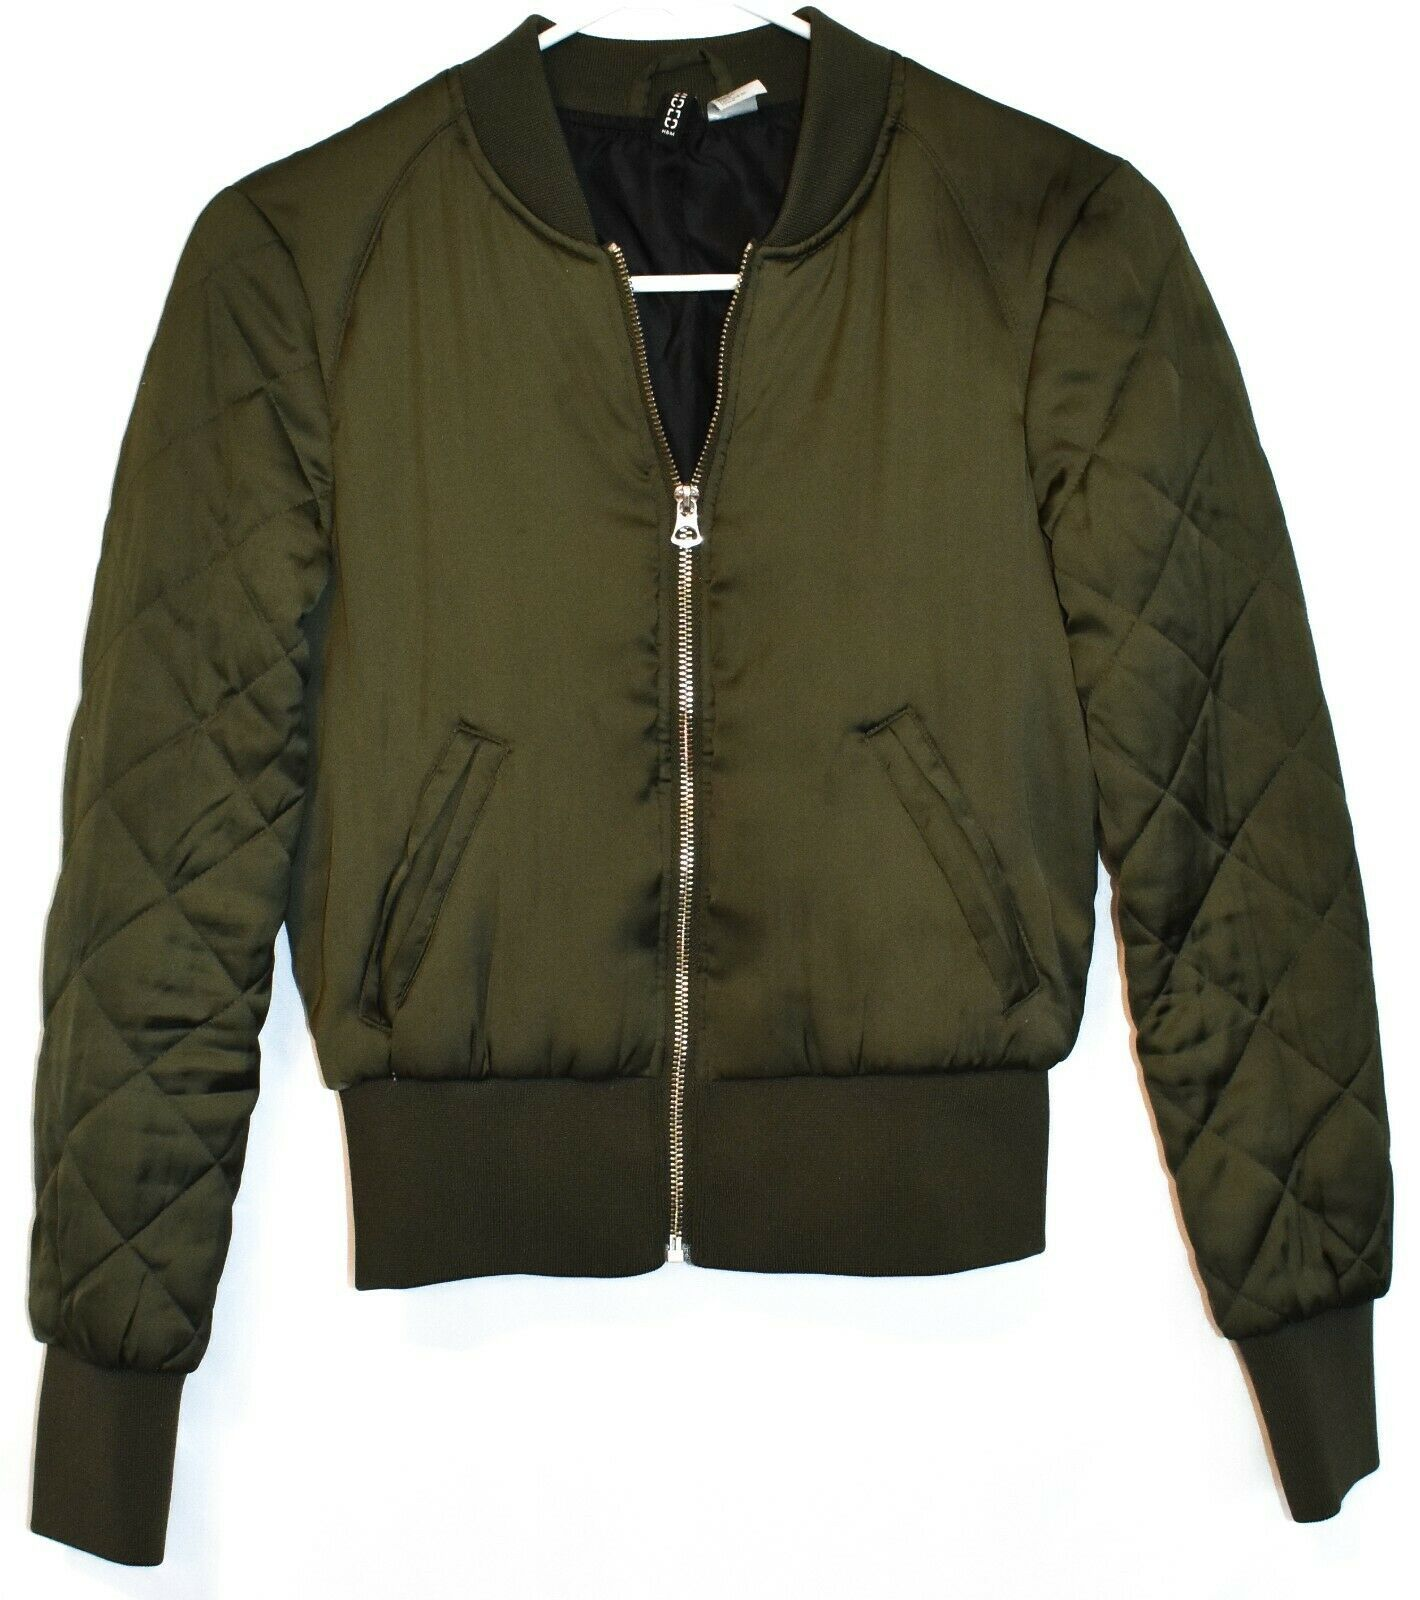 Divided by H&M Women's Army Green Zip Up Puffer Bomber Jacket Size 2